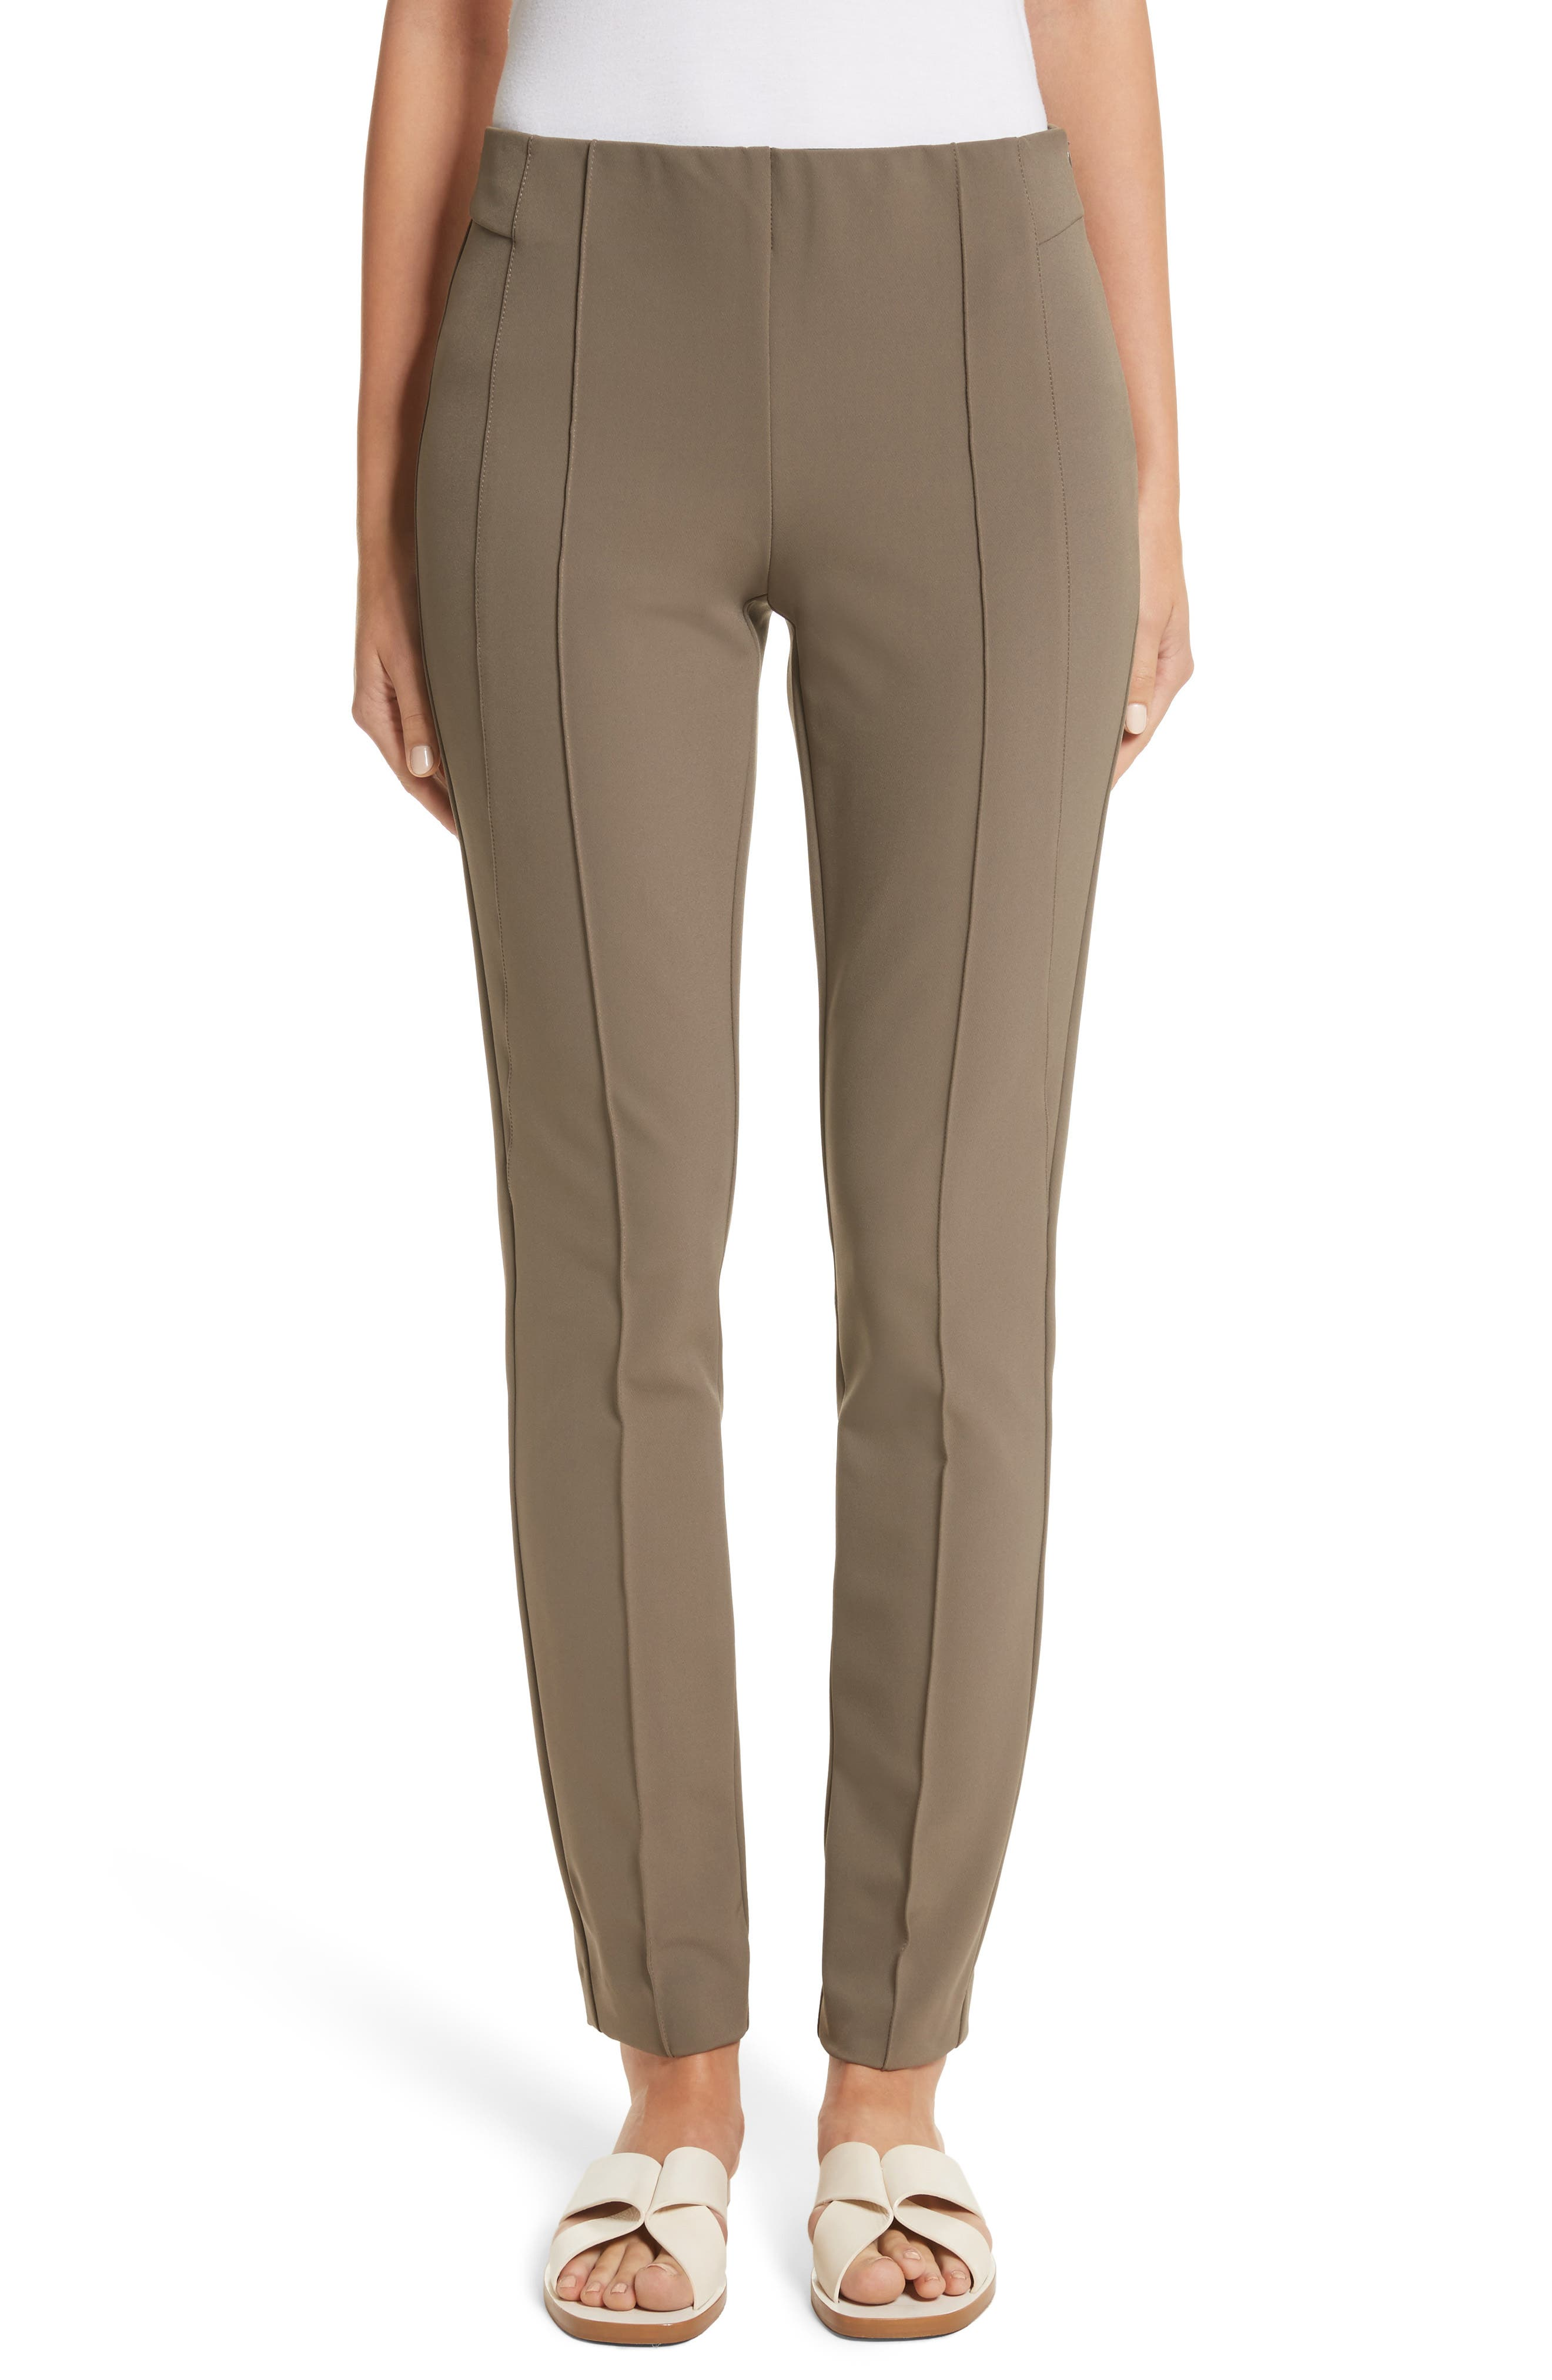 how to style brown pants outfit ideas for women with brown pants herstylecode How to Style Brown Pants - 30 Best Outfit Ideas for Women with Brown Pants